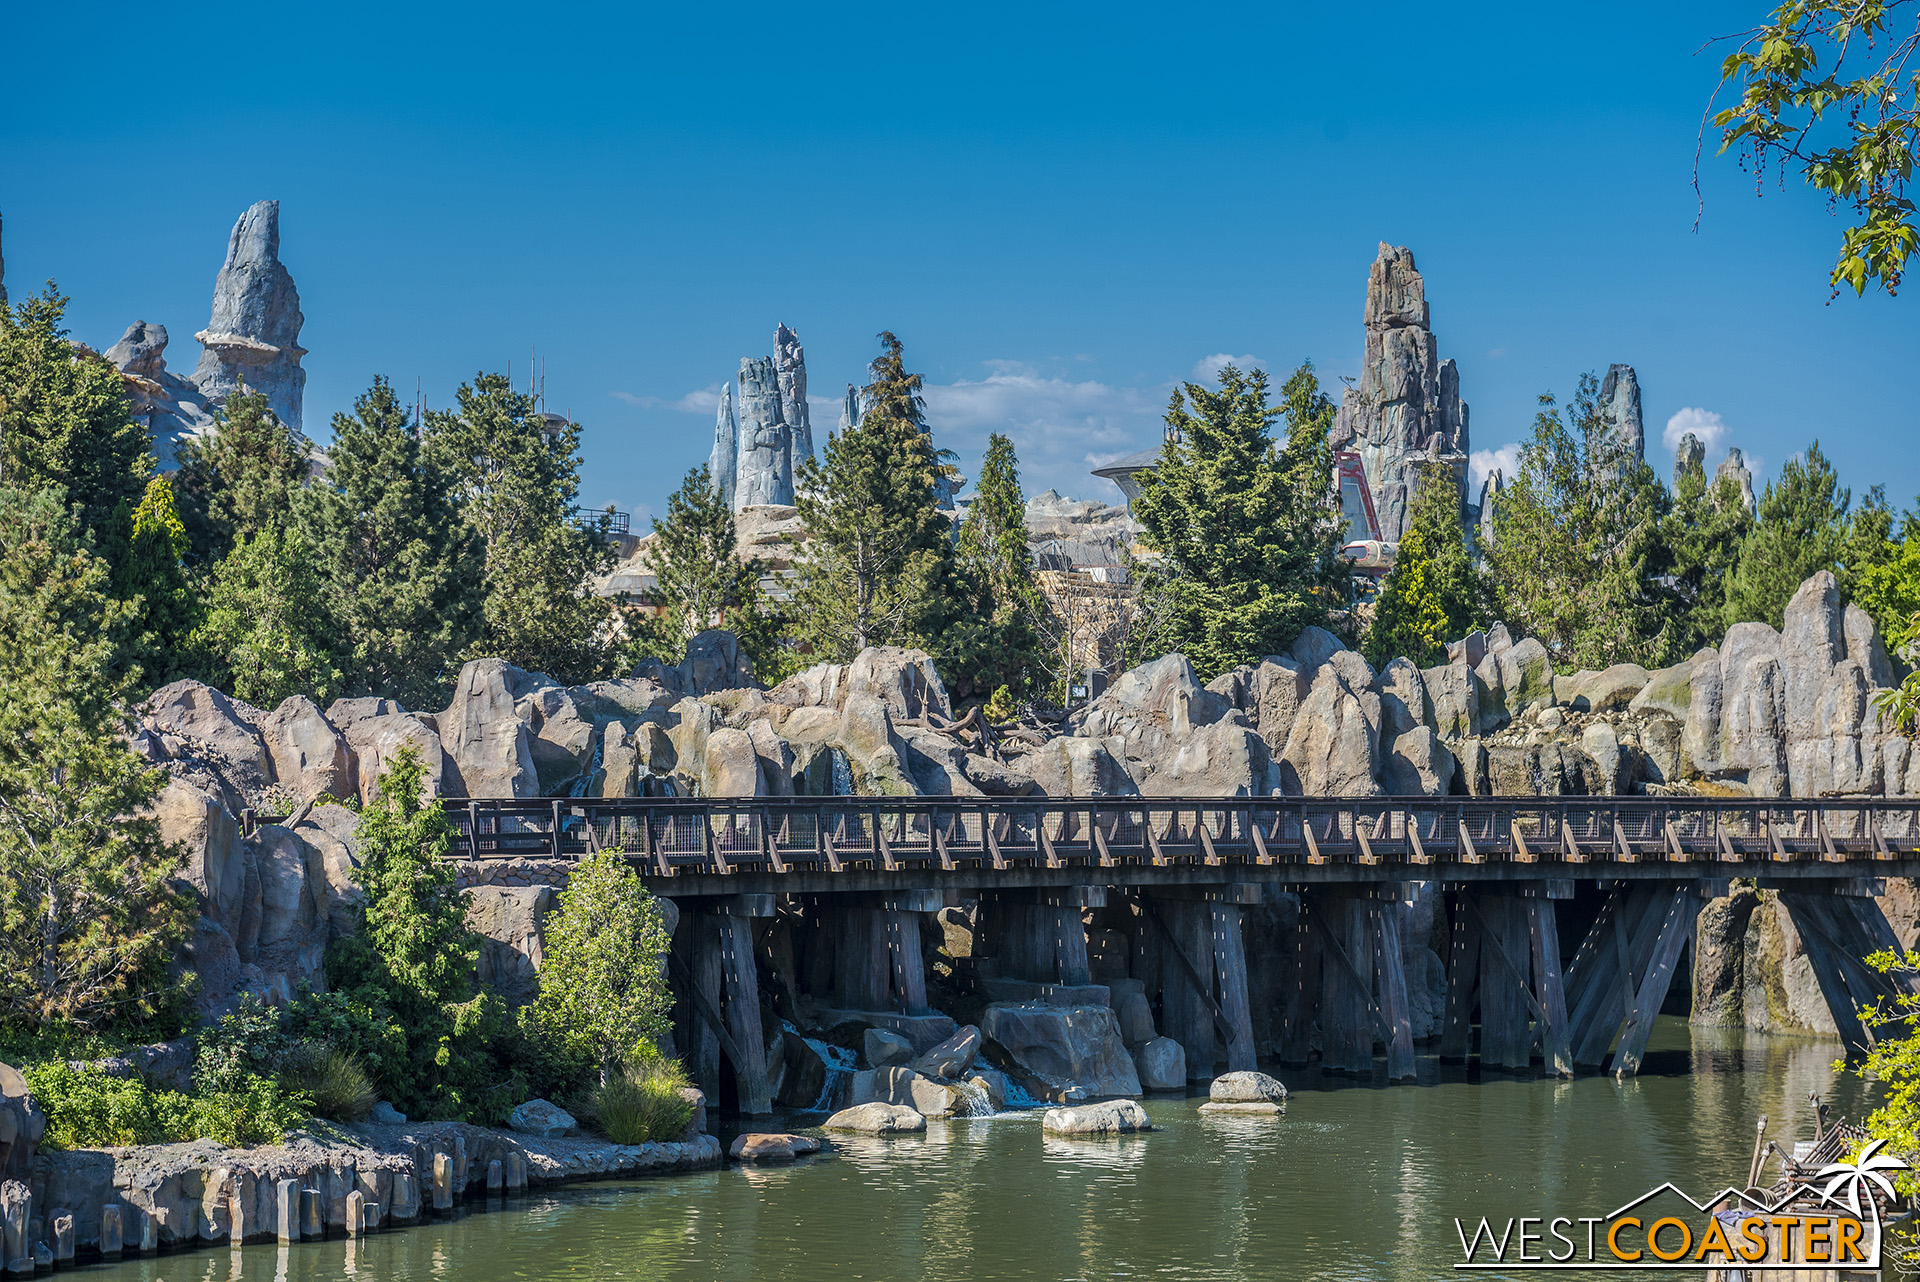 But the spires of Batuu look great from the Rivers of America!